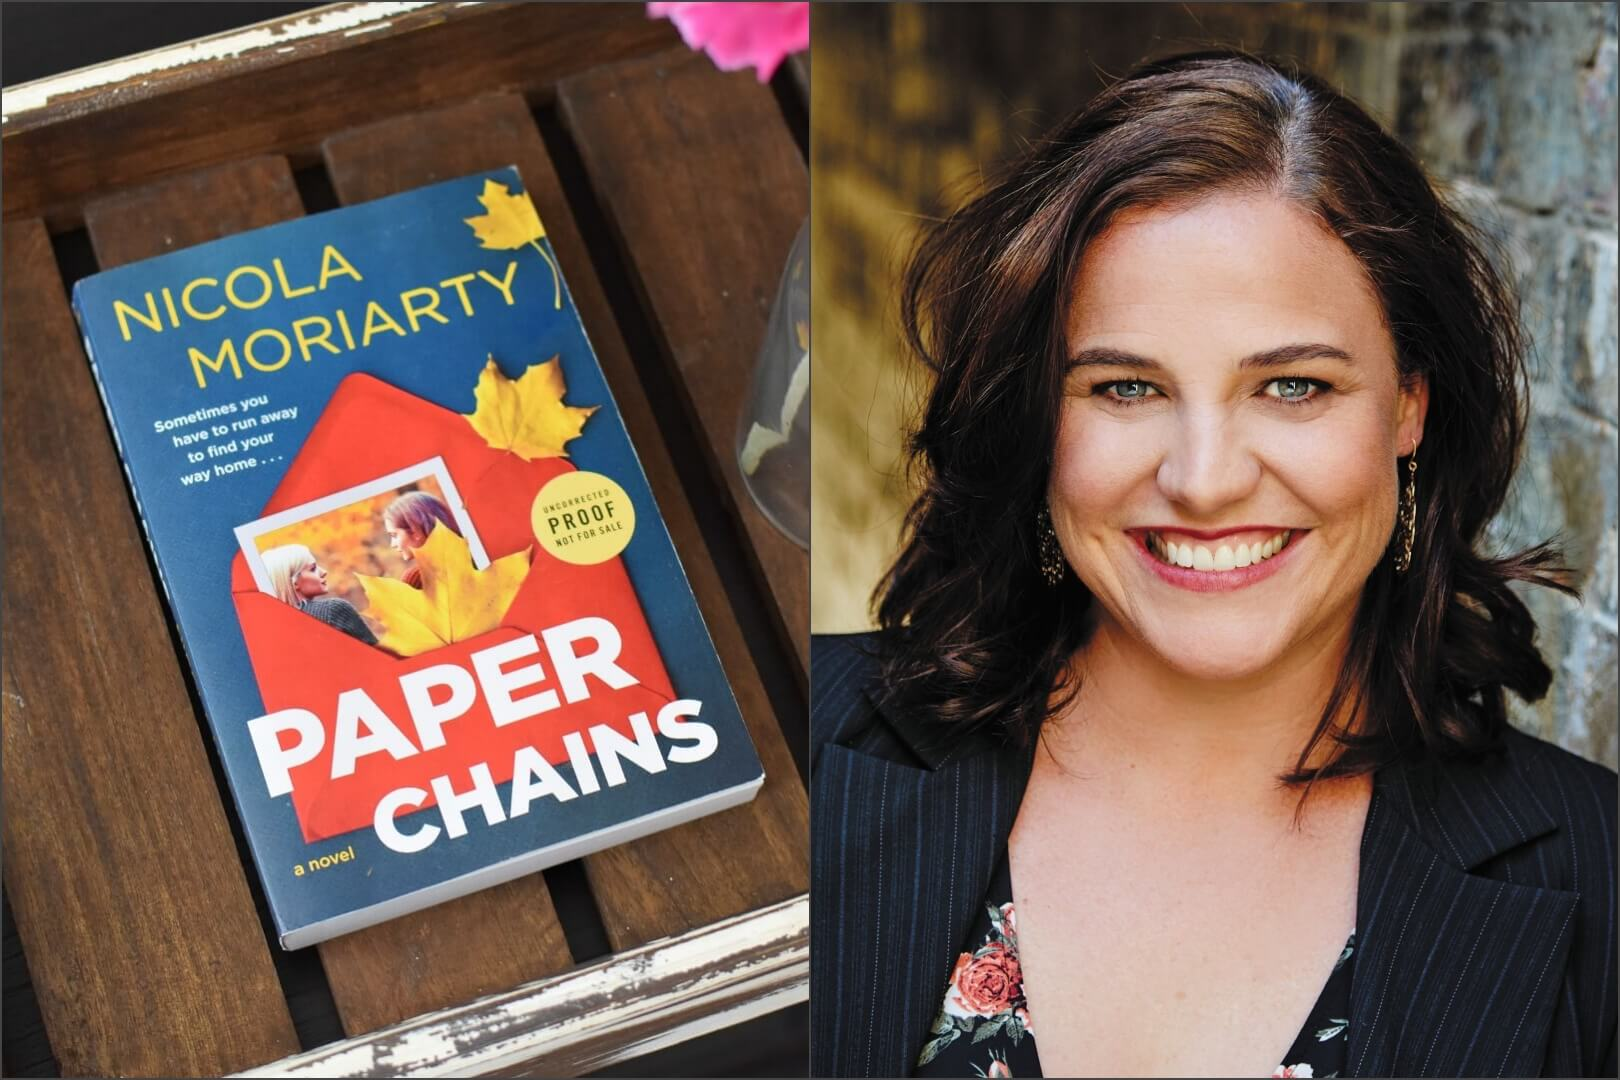 Paper Chains Author Nicola Moriarty Interview - Book Club Chat